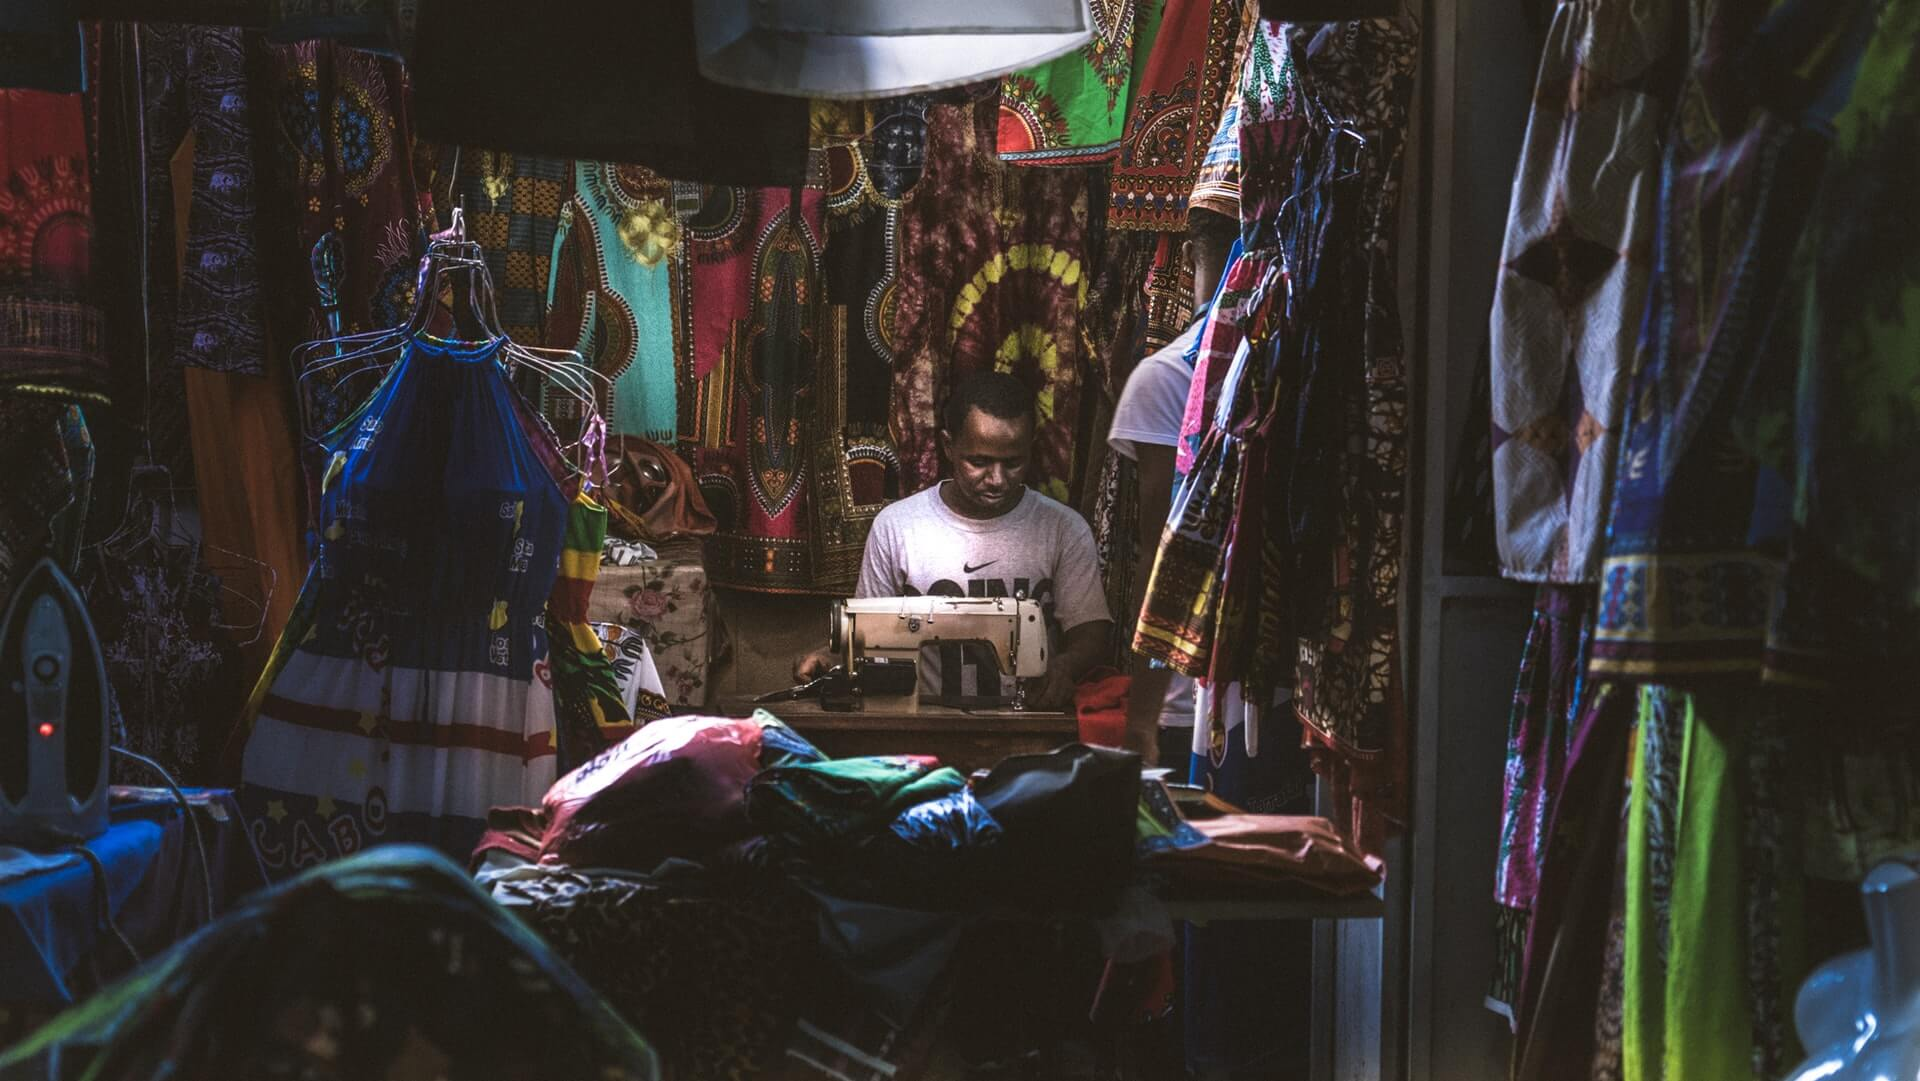 A tailor in his shop in Cape Verde working at a sewing machine